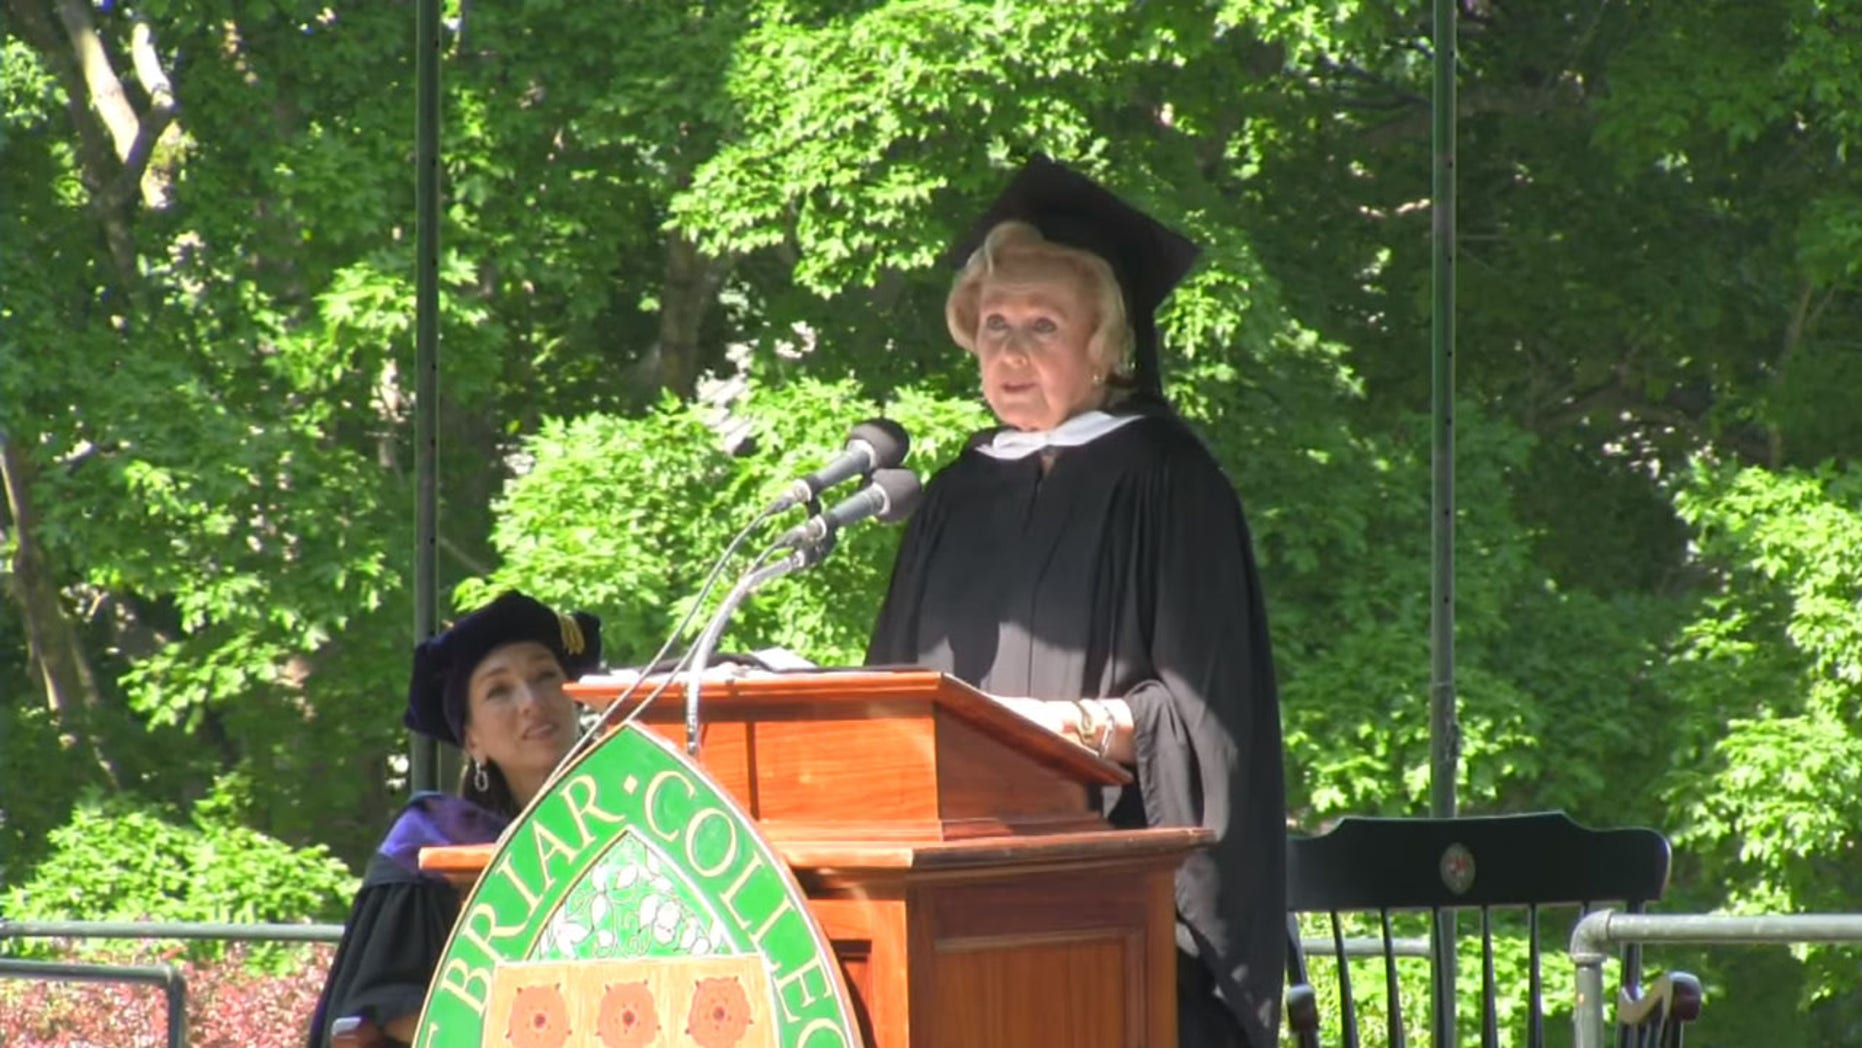 Sweet Briar College commencement speaker and alumna, Nella Gray Barkley, came under fire for criticizing the #MeToo movement during her address.